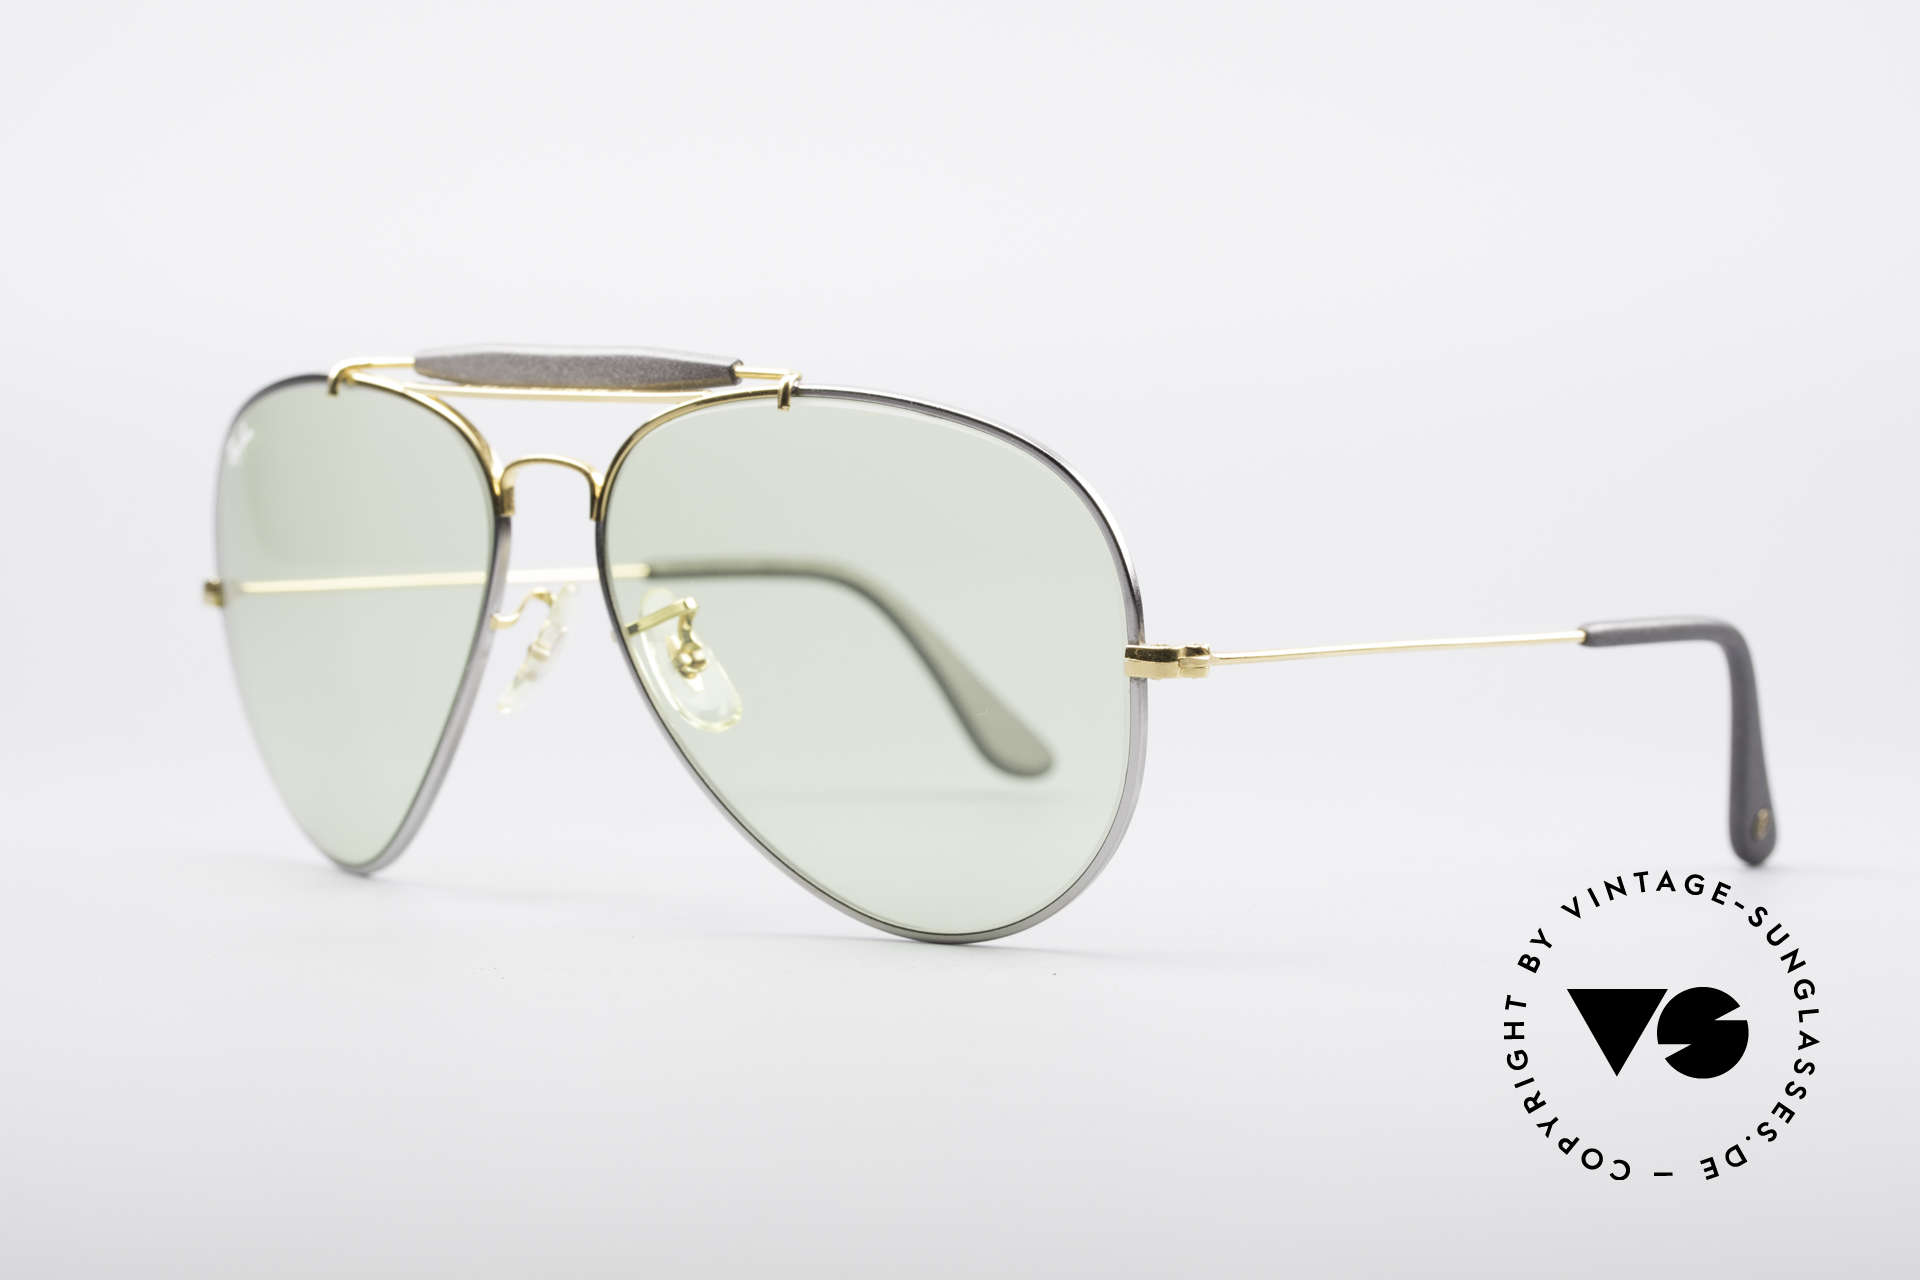 Ray Ban Outdoorsman II Precious Metals Changeable, titanium frame and 24kt gold-plated components, Made for Men